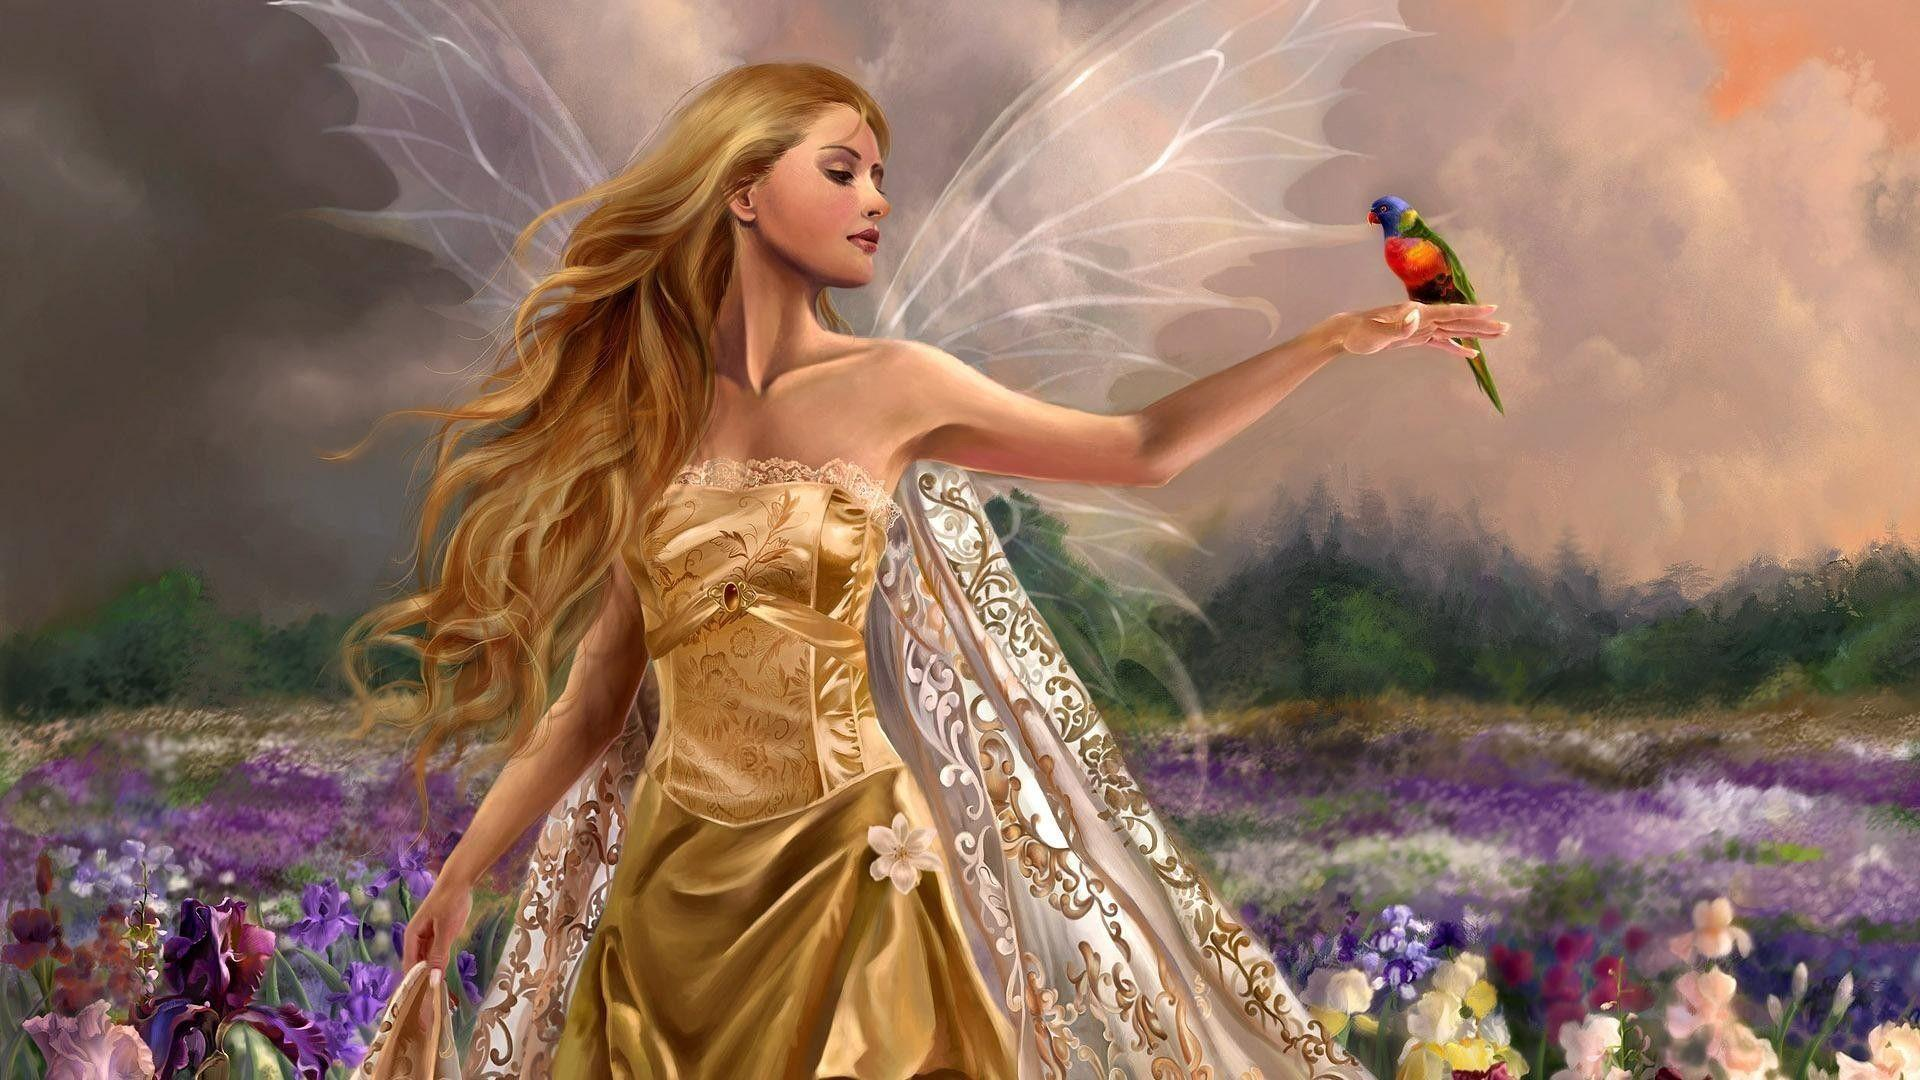 Fantasy fairies wallpapers wallpaper cave fantasy fairy wallpapers for desktop vergapipe thecheapjerseys Gallery